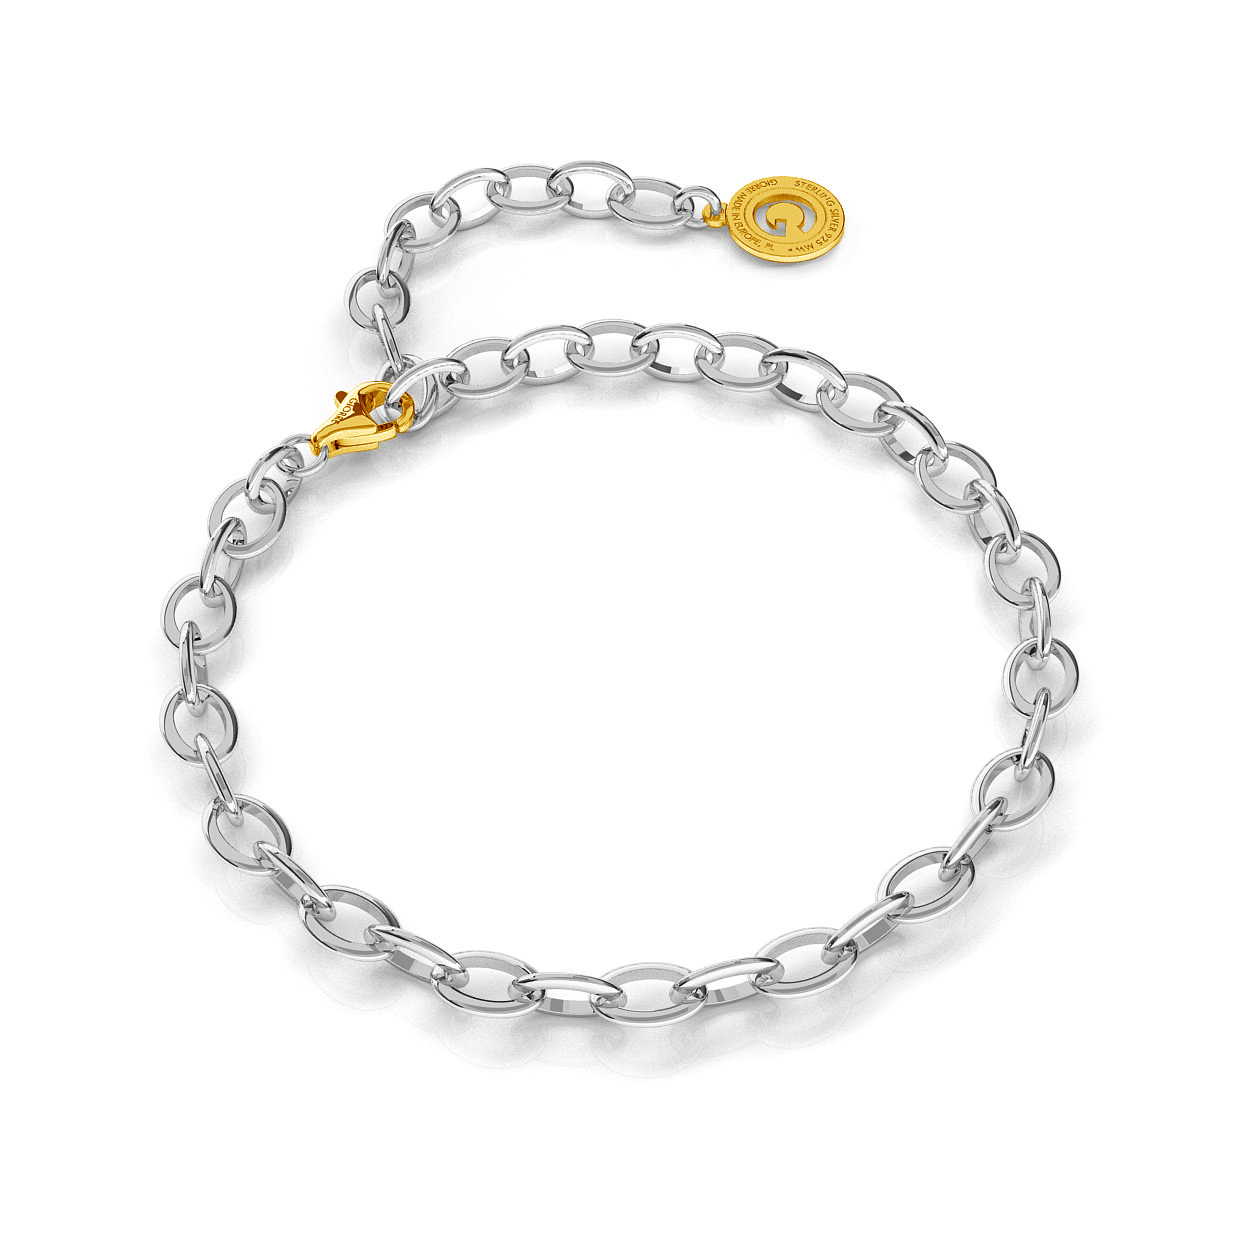 STERLING SILVER BRACELET 16-24 CM LIGHT RHODIUM, YELLOW GOLD CLASP, LINK 7X5 MM